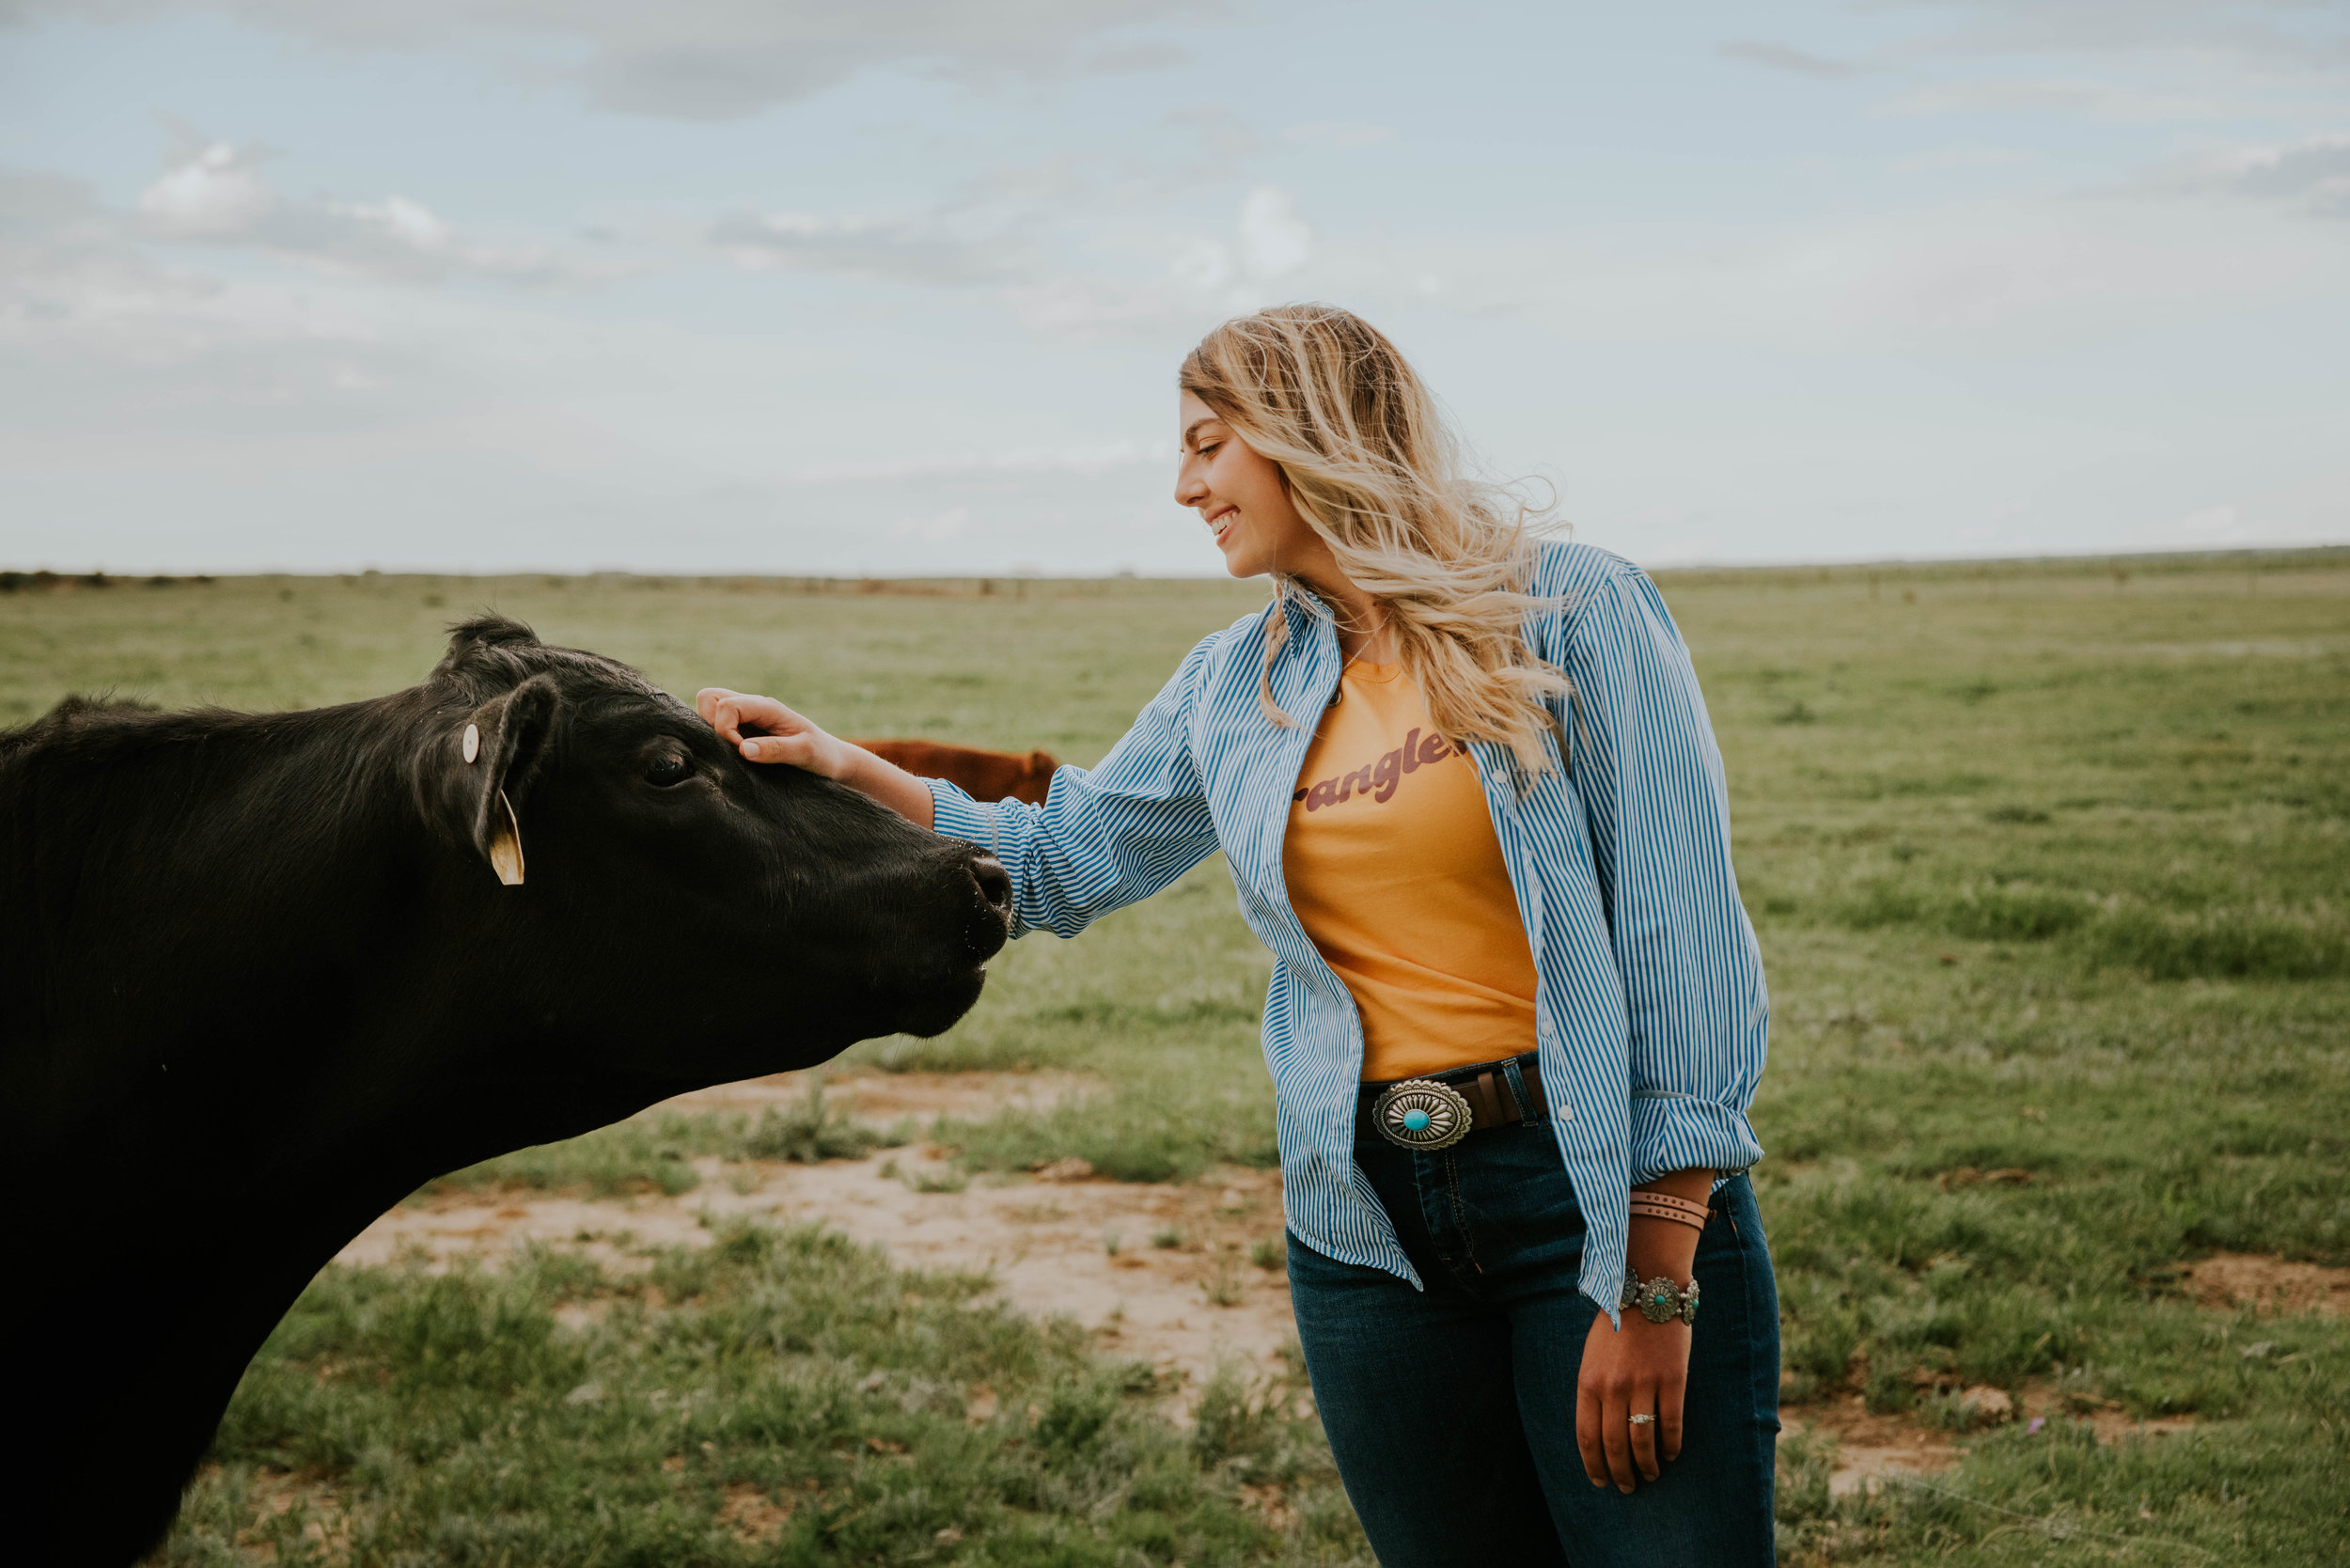 Found me from my crazy obsession with cattle and farm life? - Now you want to know MORE?!